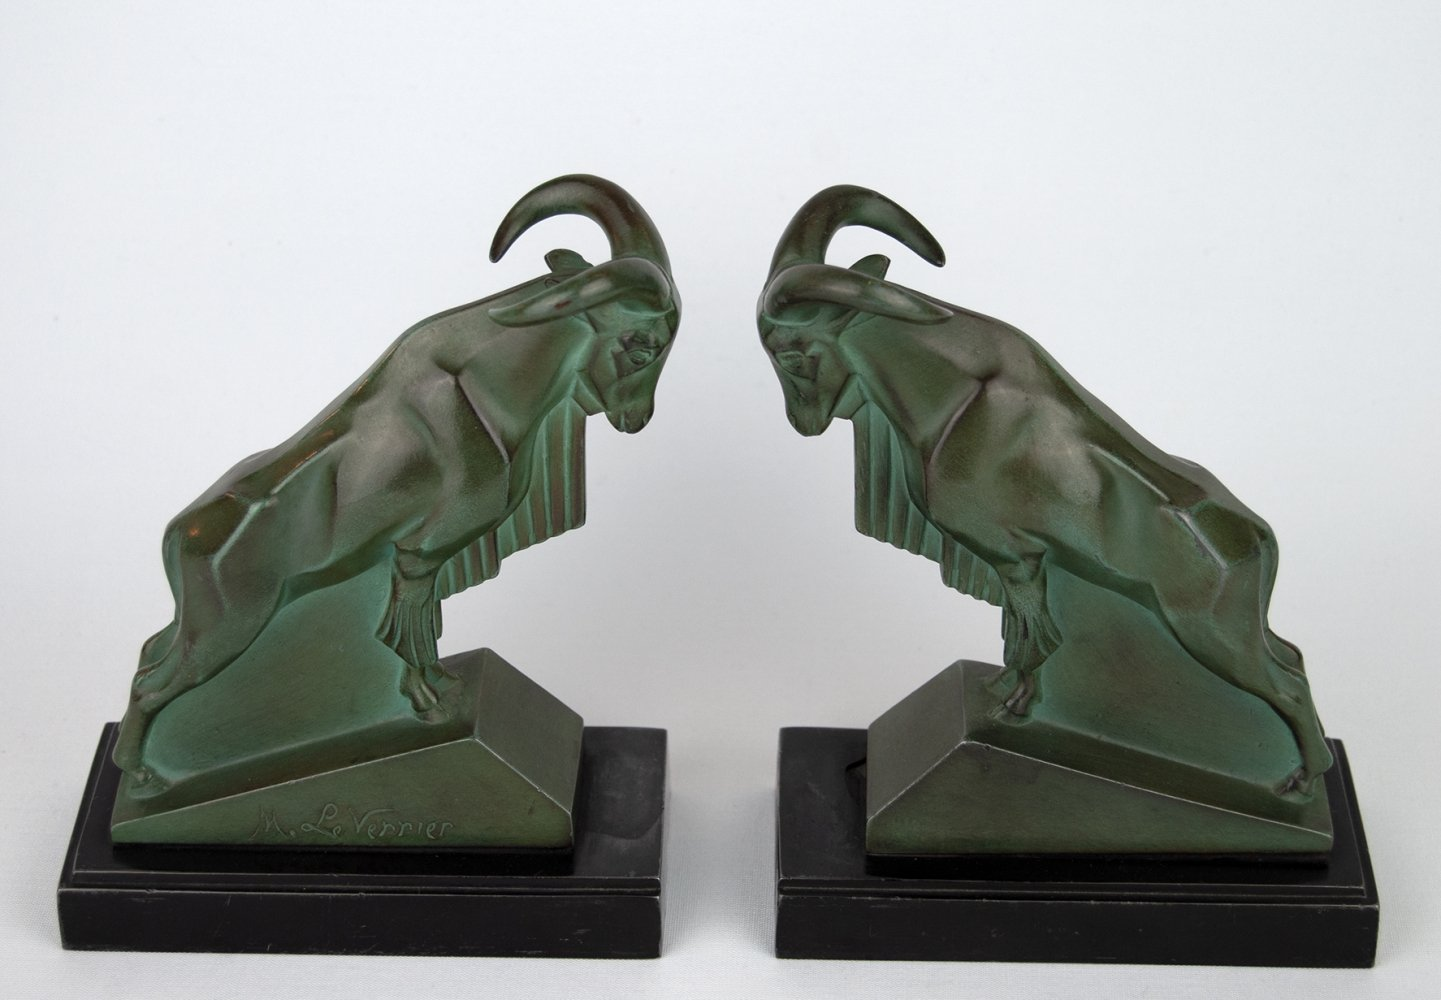 1930s Art Deco Book Ends by Max Le Verrier